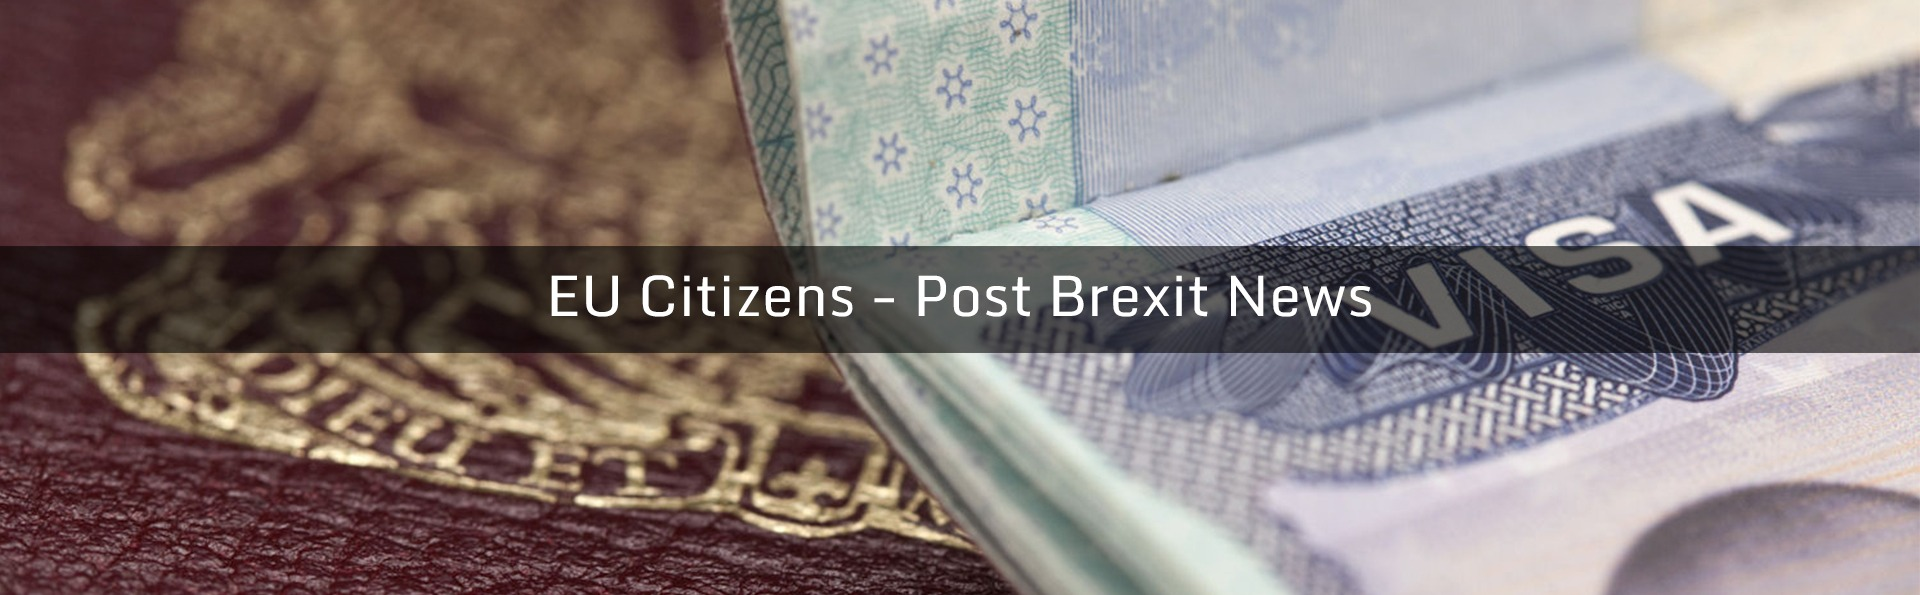 EU citizens post brexit news